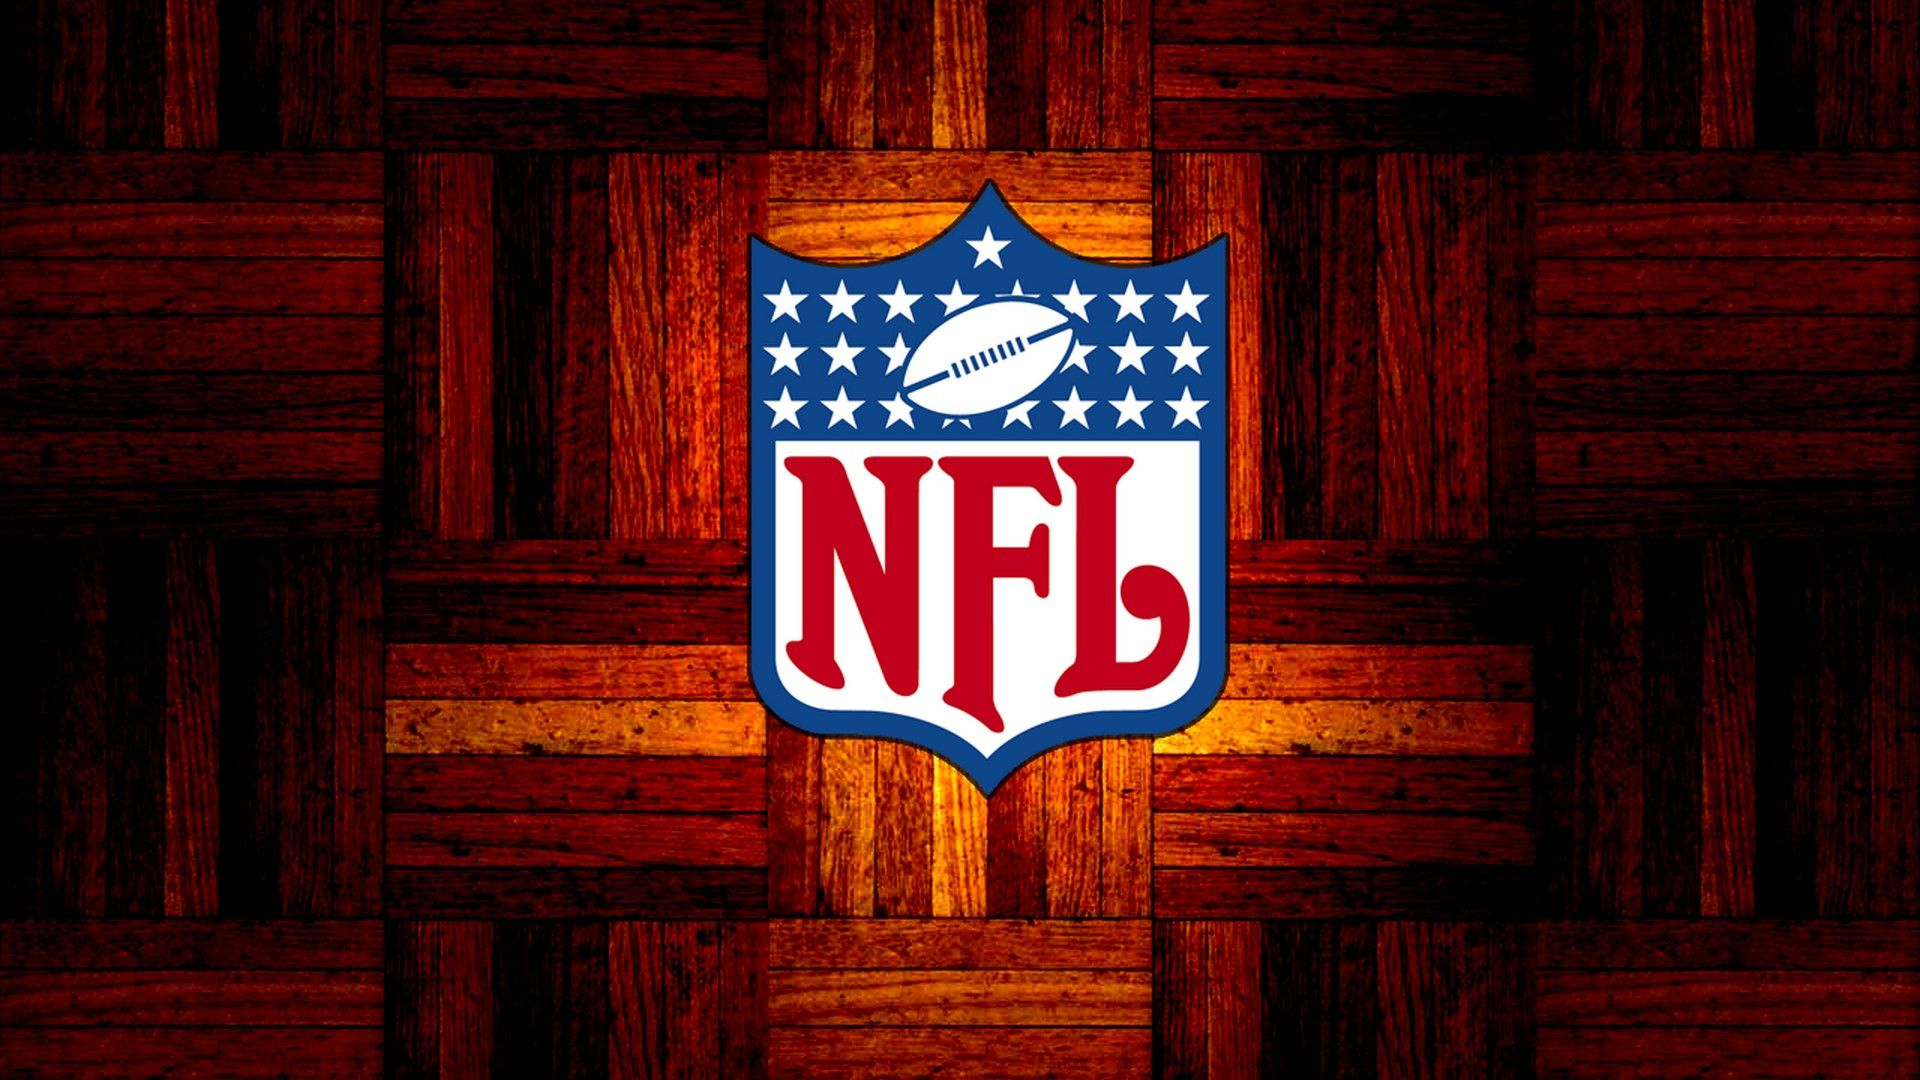 Hd Cool Nfl Wallpapers Nfl Football Wallpaper Logo Wallpaper Hd Football Wallpaper